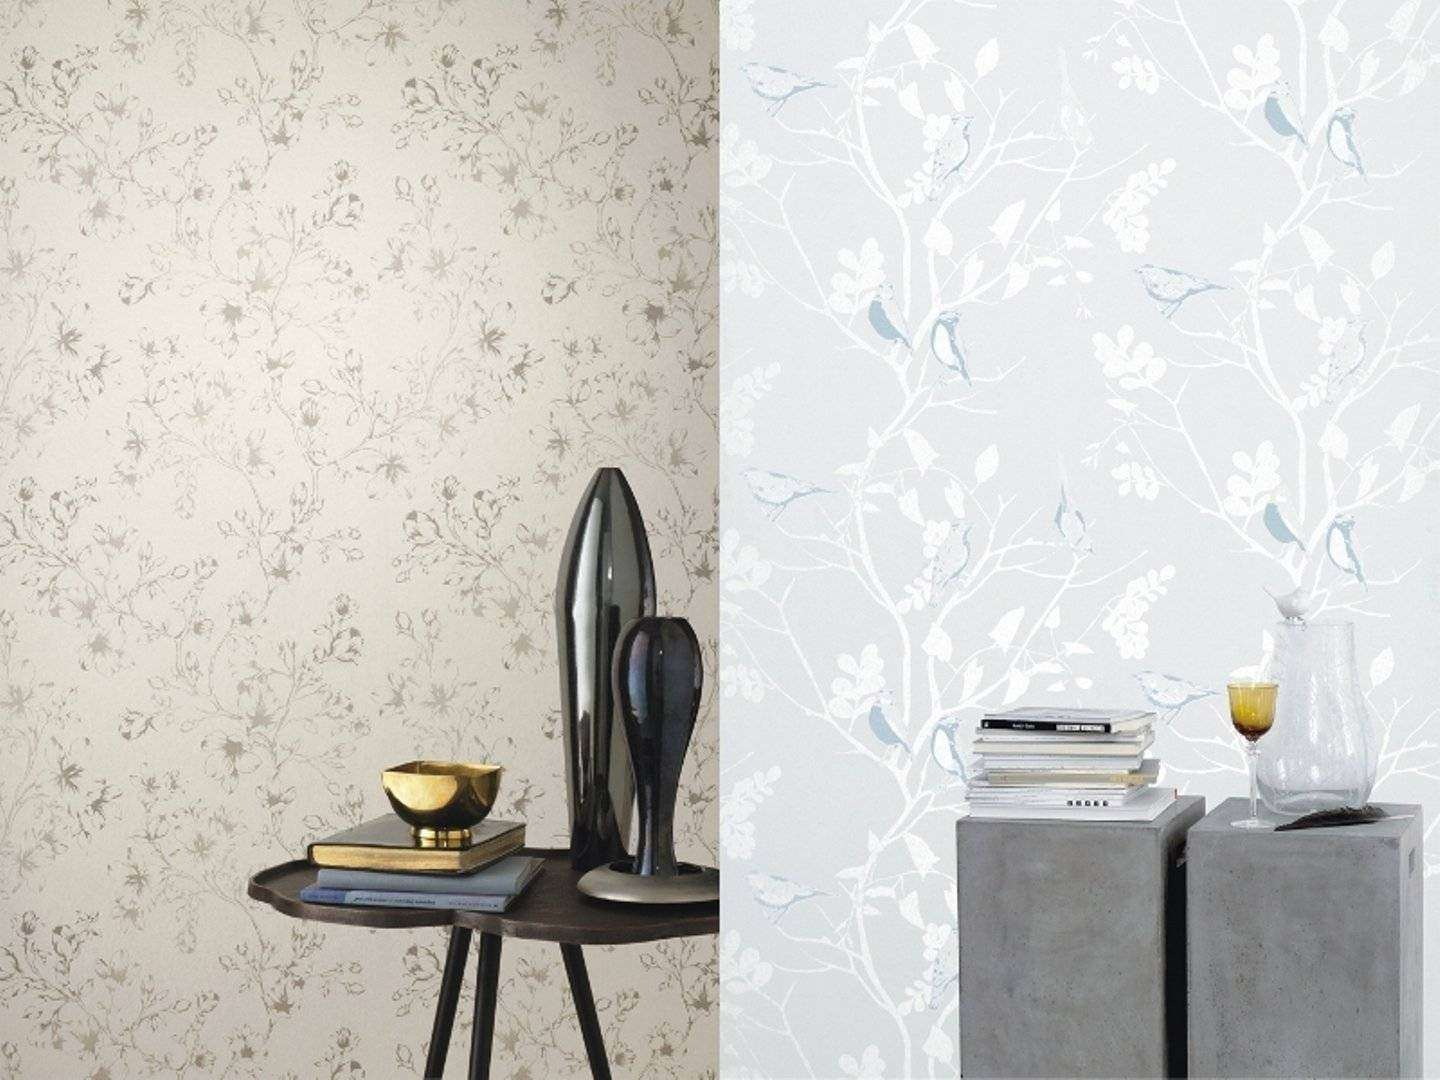 <a href=&quot;tapet clasic cu model floral &quot;>tapet rasch<img src='https://www.unican.ro/wp-content/themes/vita/img/dreapta.png' class='pull-right hidden-xs' style='margin-right:-10px;margin-top:-10px; max-height:41px'></a>